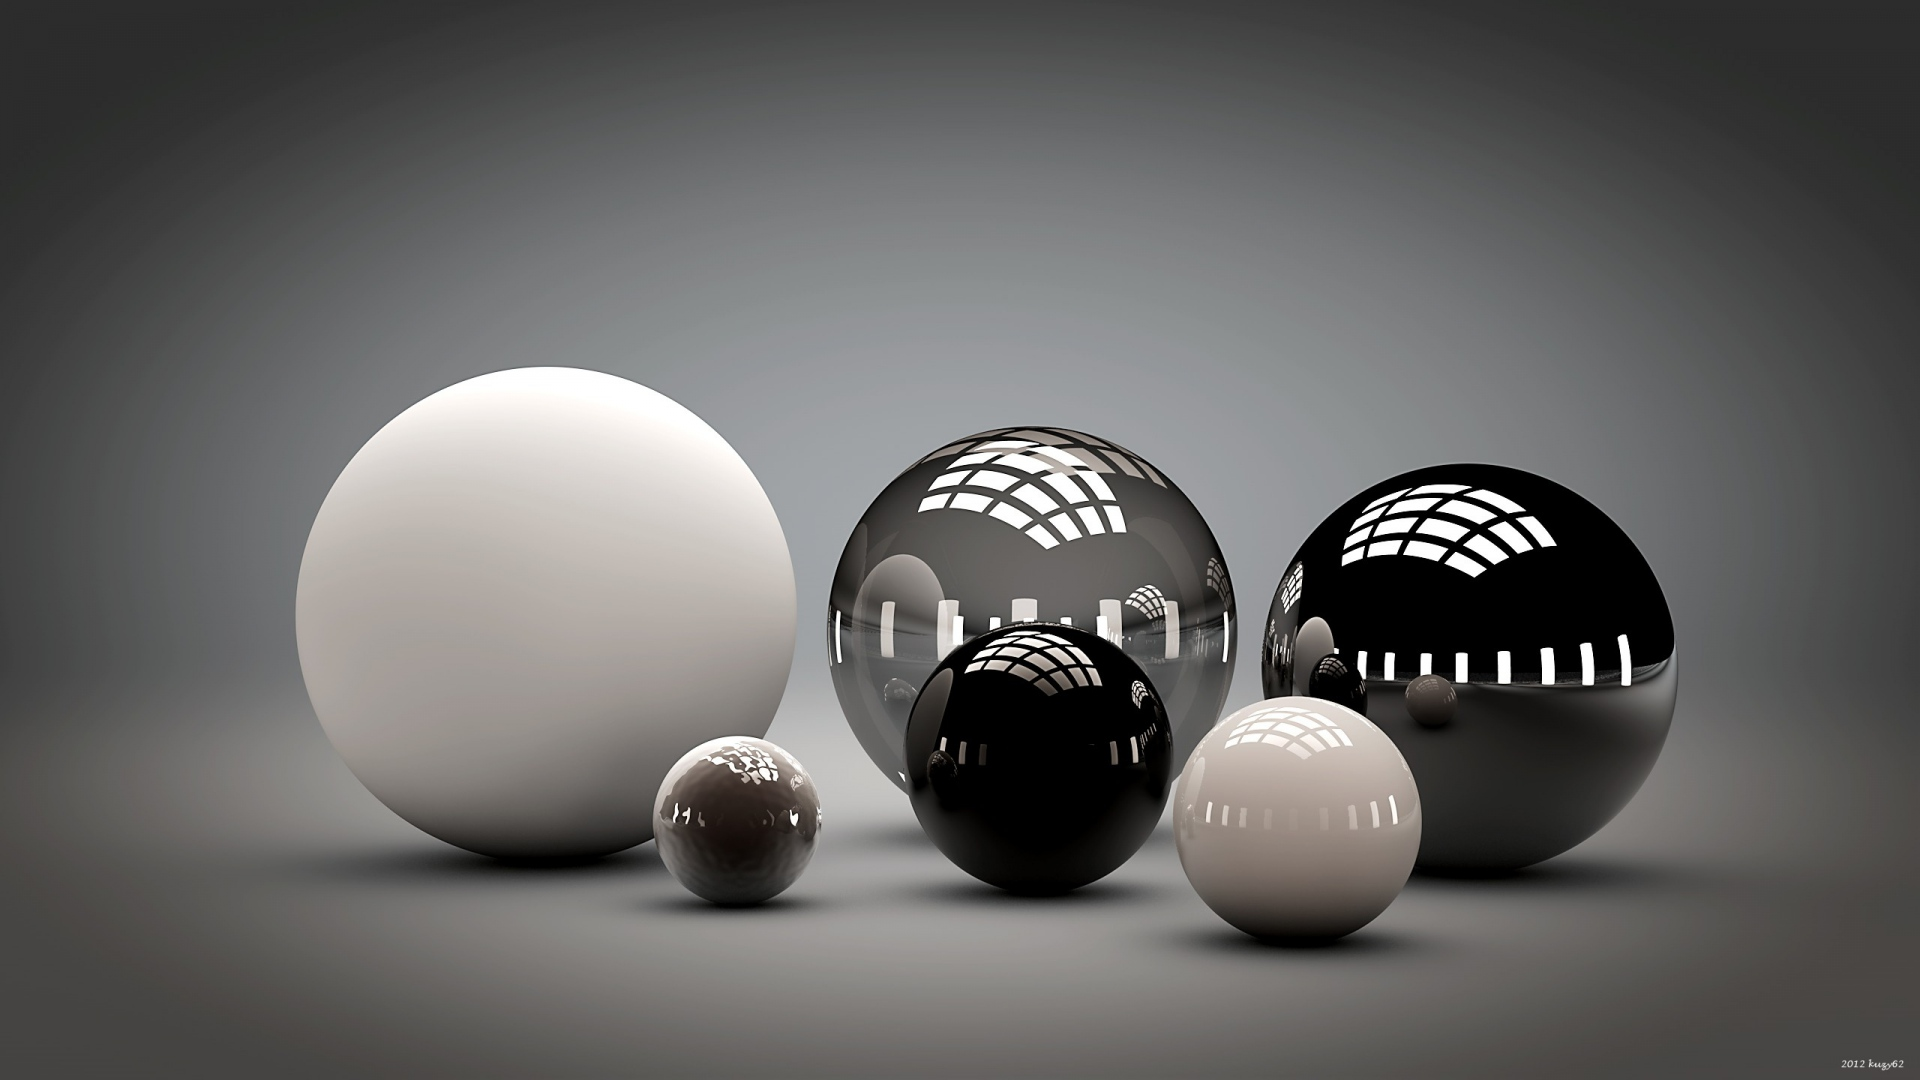 Get The Latest Balls Shape Sleek News Pictures And Videos Learn All About From Wallpapers4uorg Your Wallpaper Source